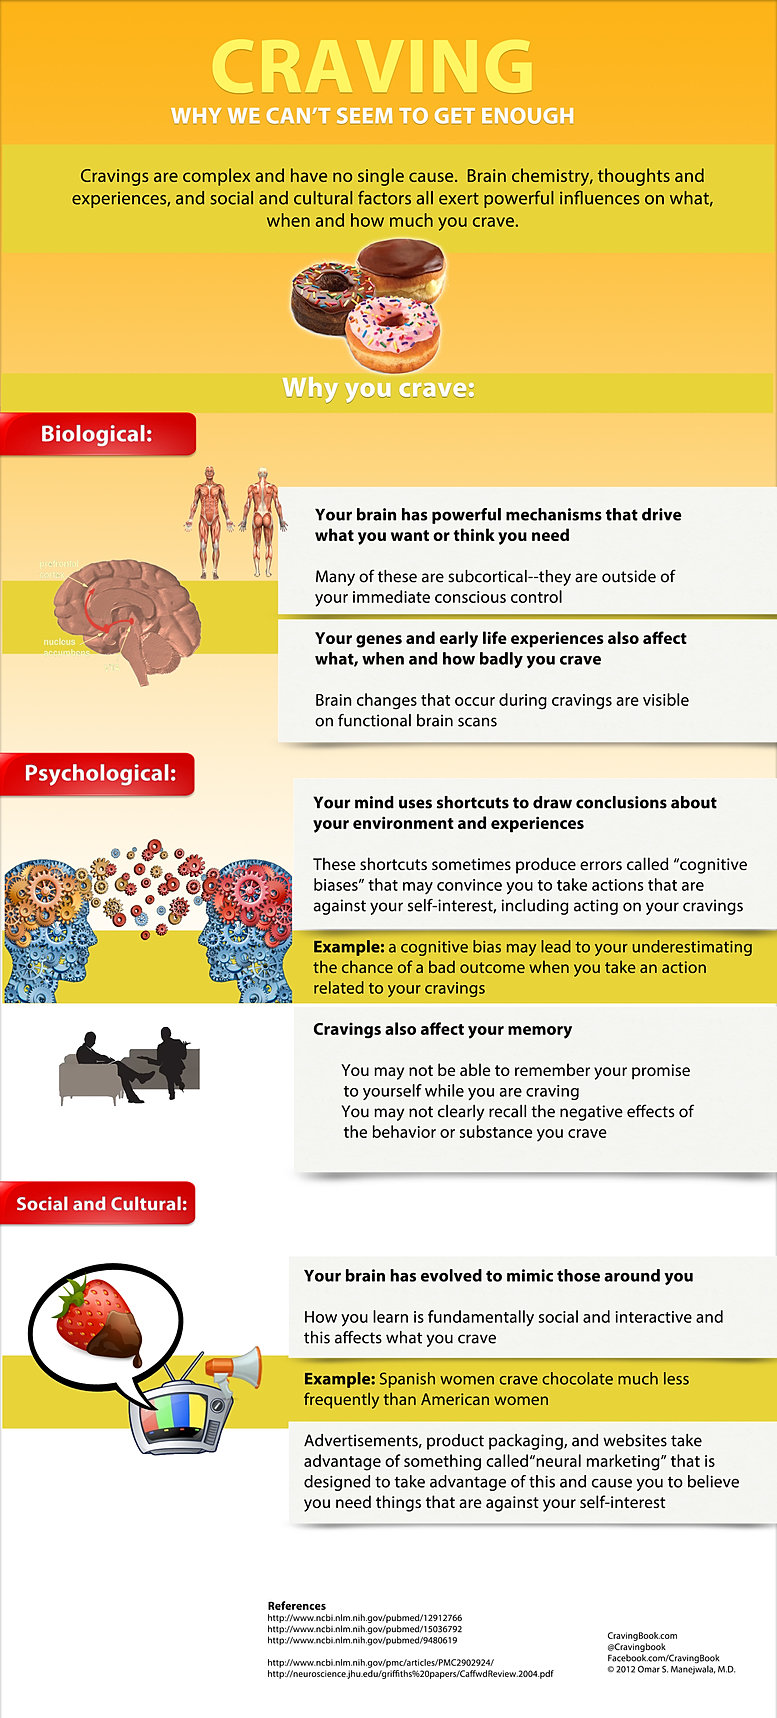 PSYCOLOGICAL AFFECTS ON ADDICTIONS